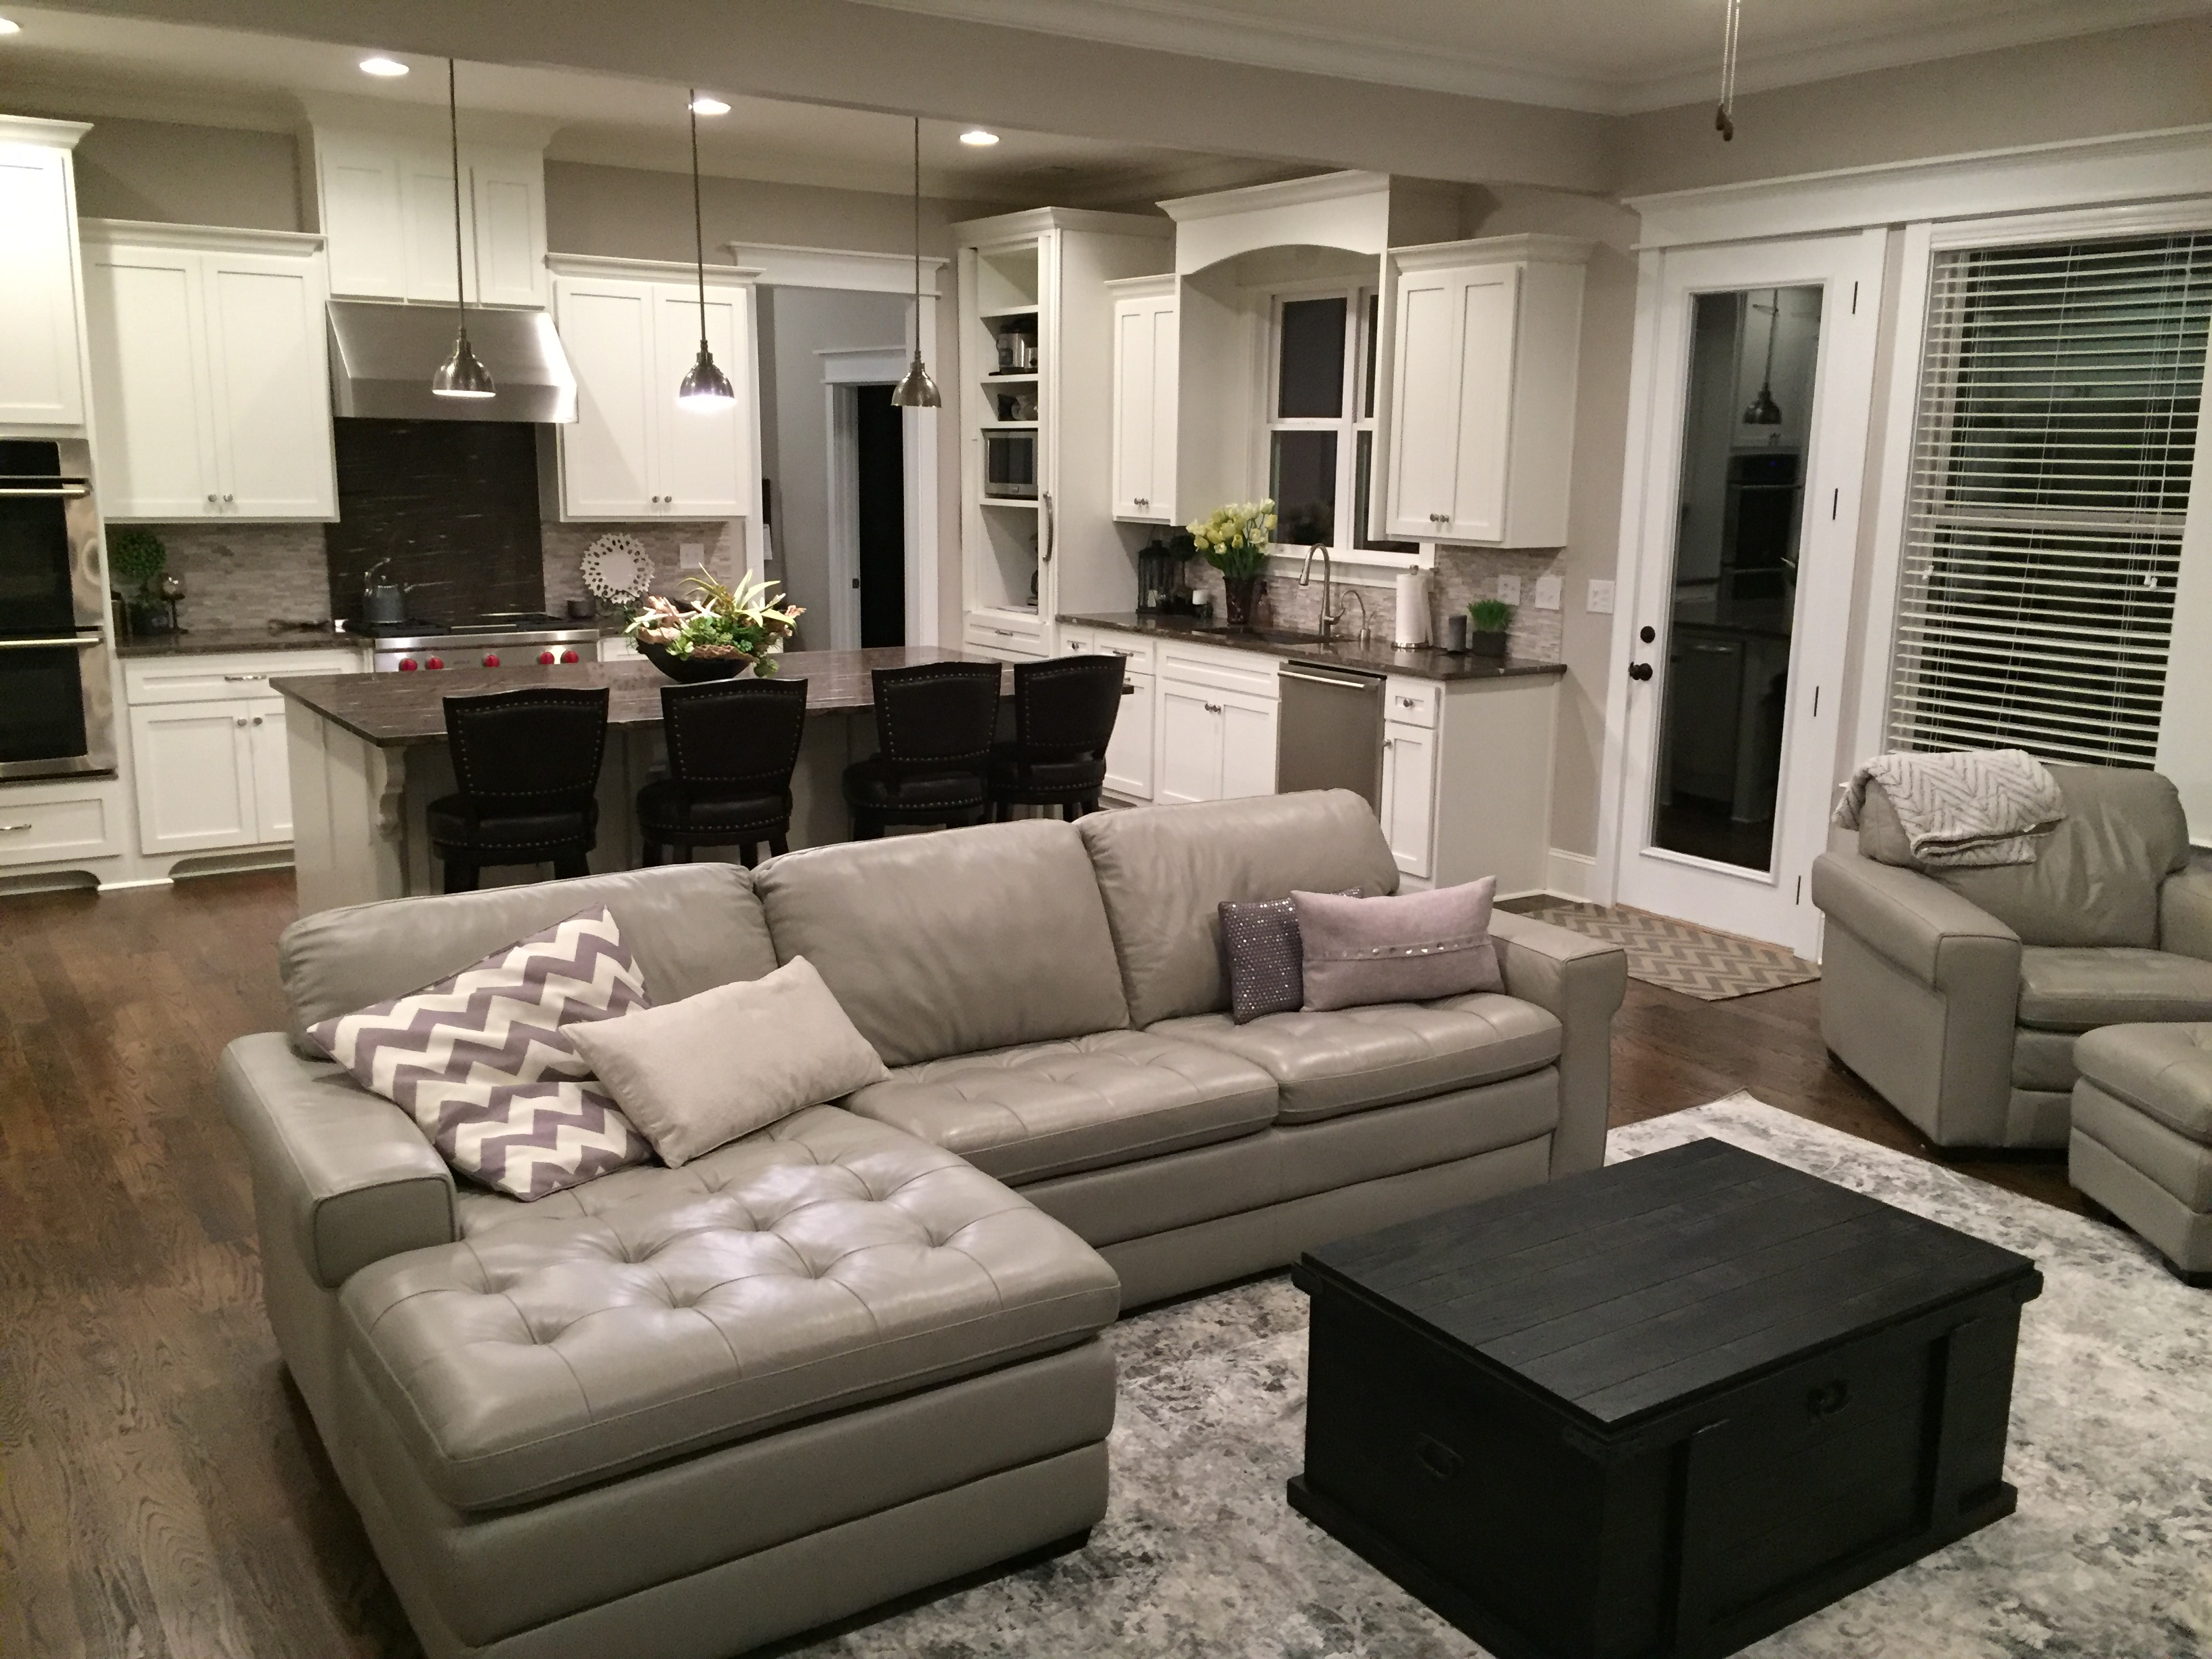 Burgh Custom Homes works closely with our clients to be sure they get their wants and needs within budget.